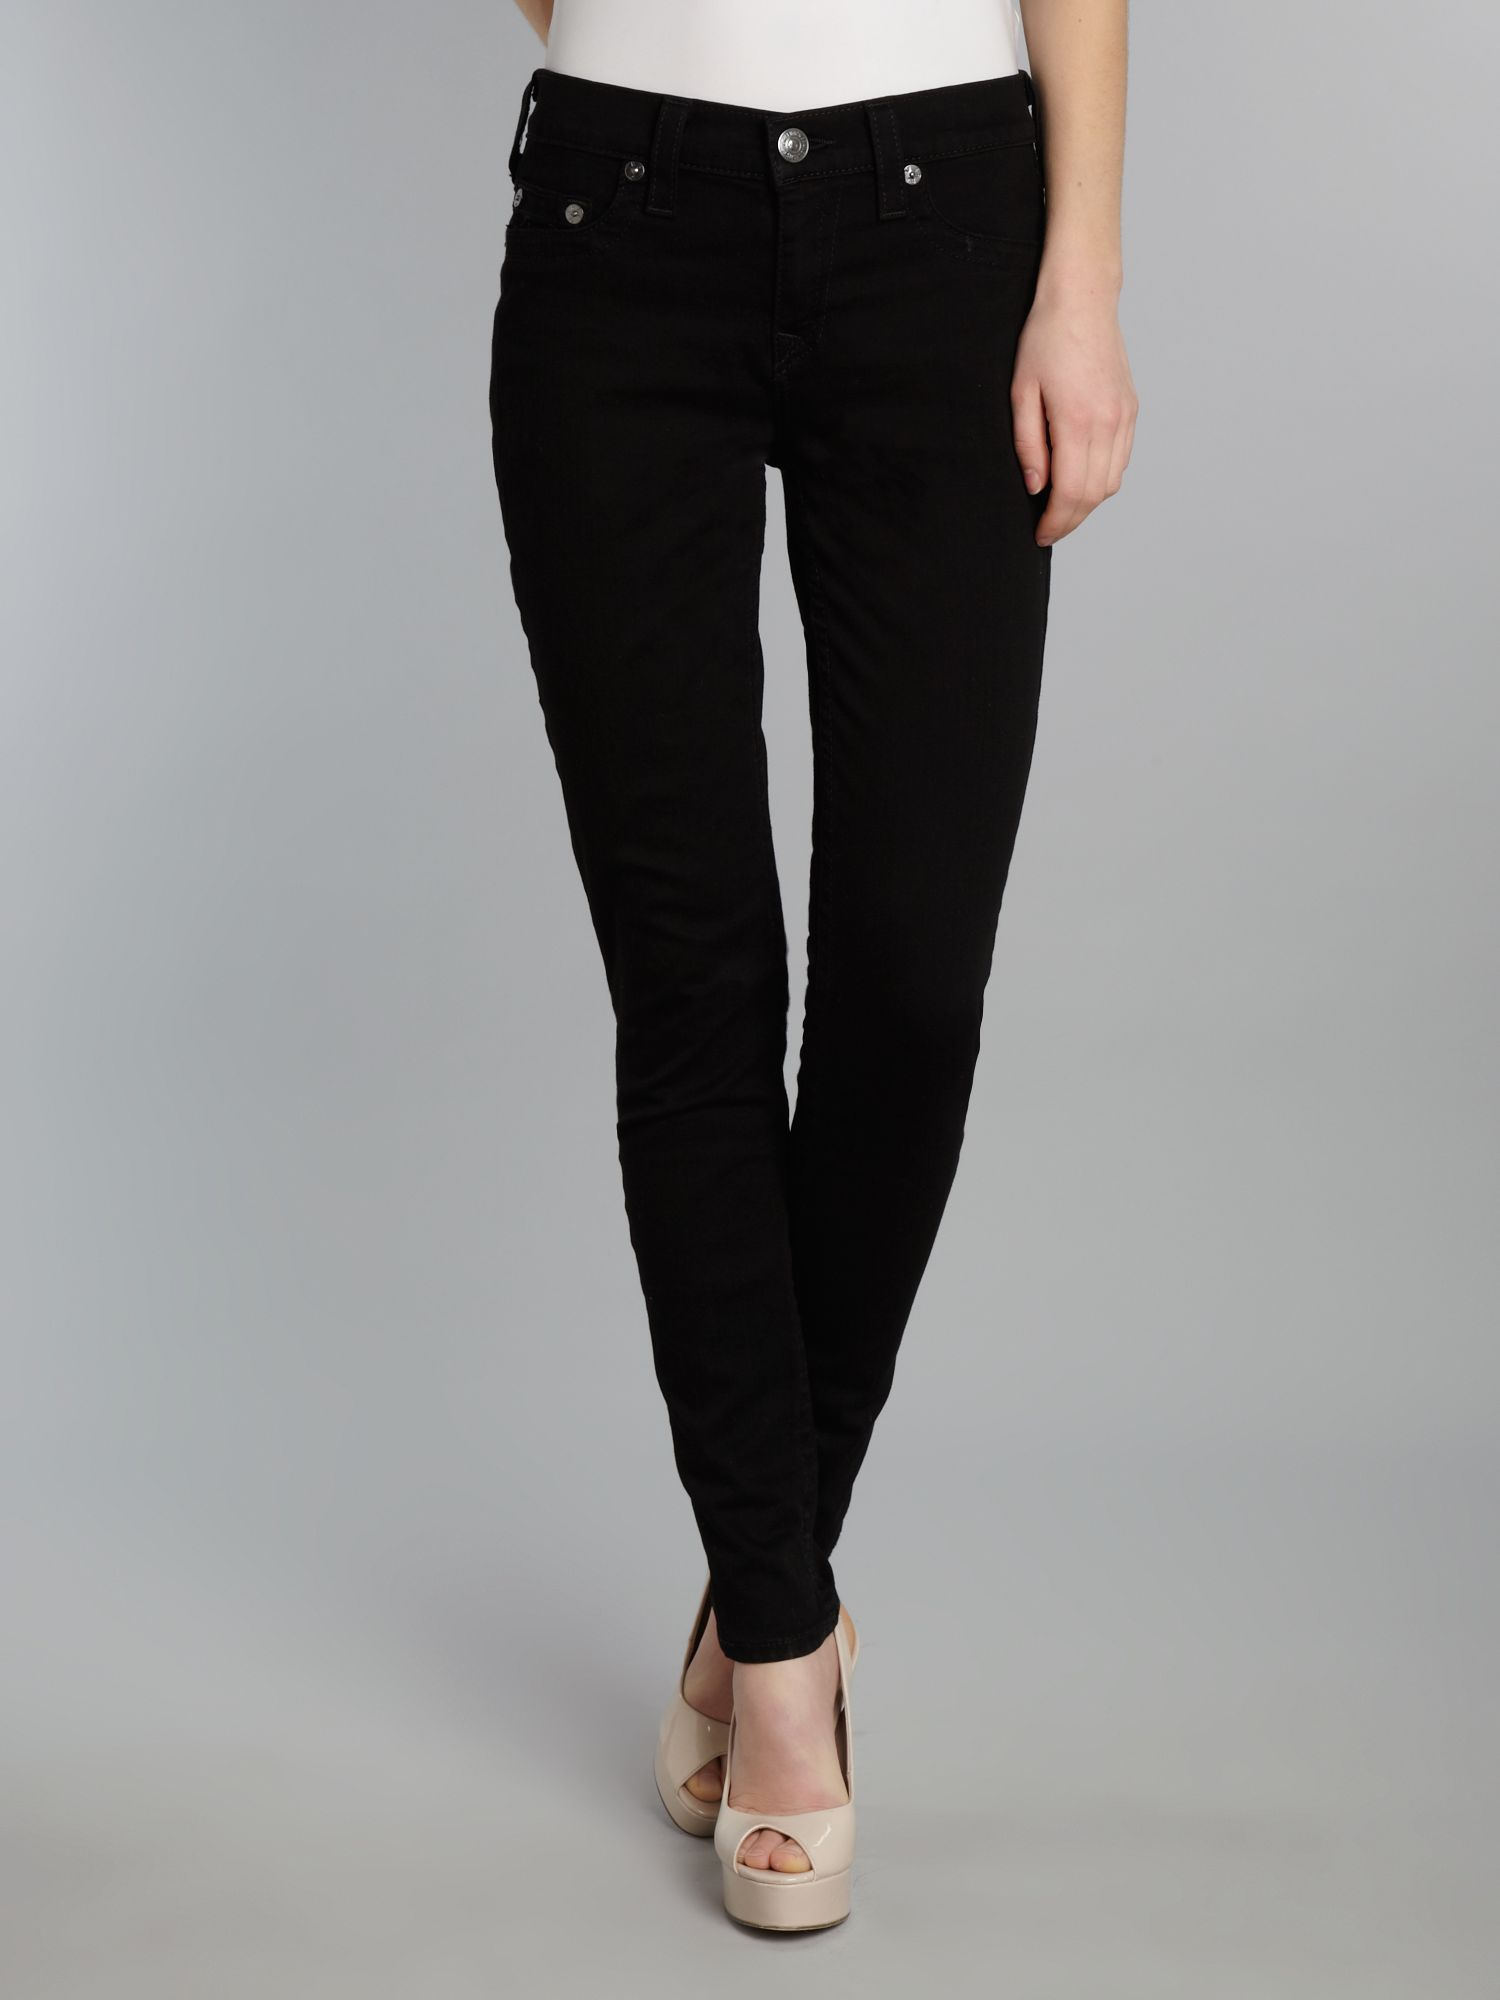 Halle skinny jeggings in Black